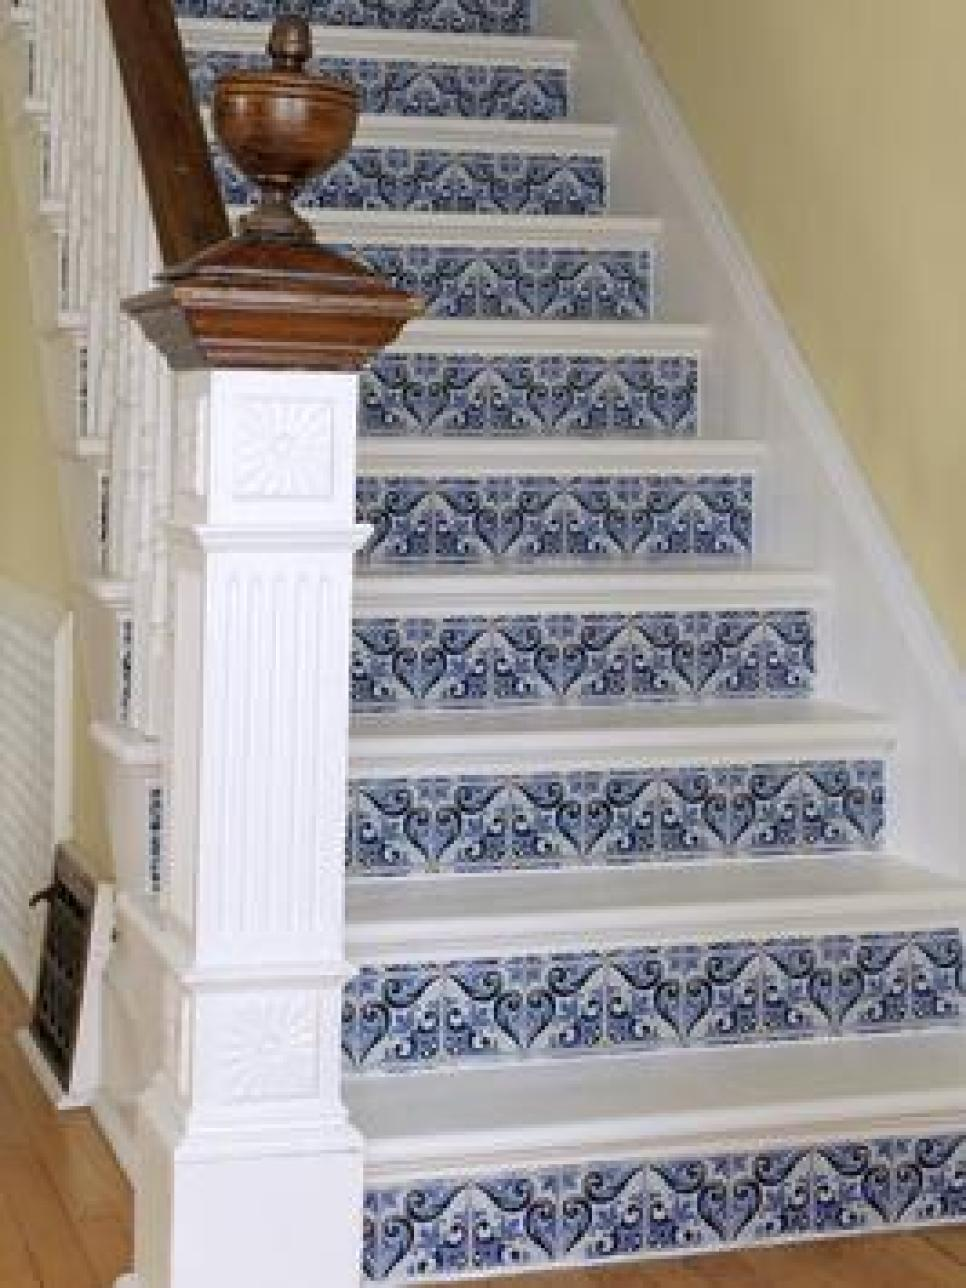 Depending On Their Placement In Your Home, Your Stairs Can Be A Prominent  Decorative Feature That Shouldnu0027t Be Overlooked. The Stair Risers Present A  Unique ...